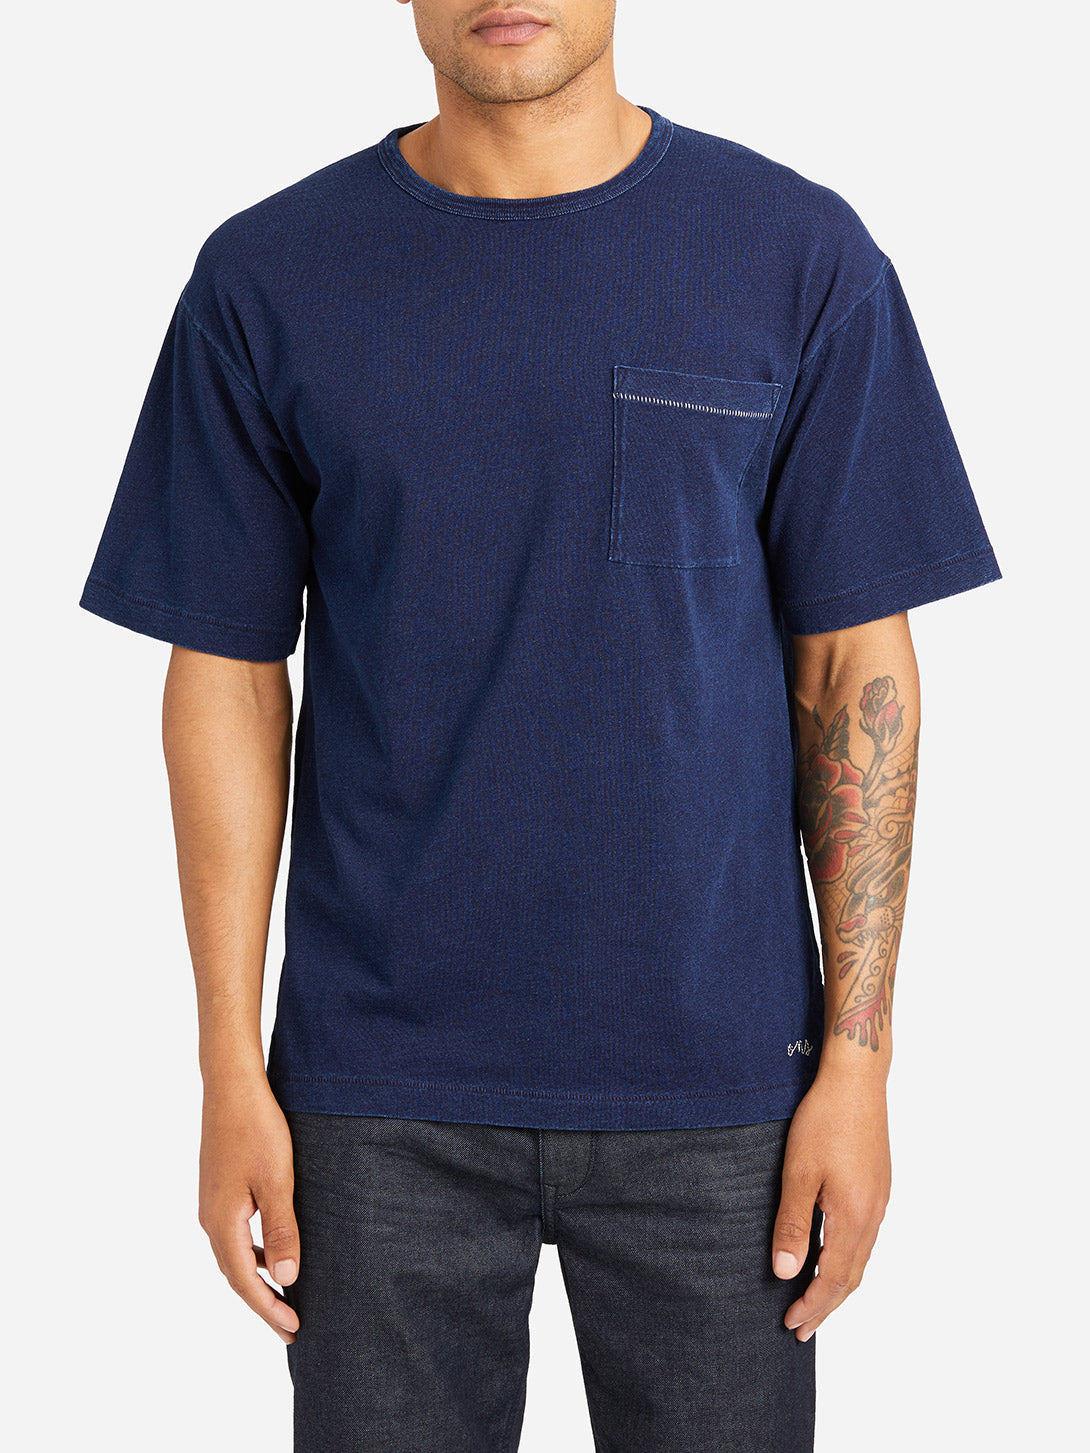 DARK INDIGO short sleeve crew neck t shirt men marcy crew neck pocket tee dk indigo